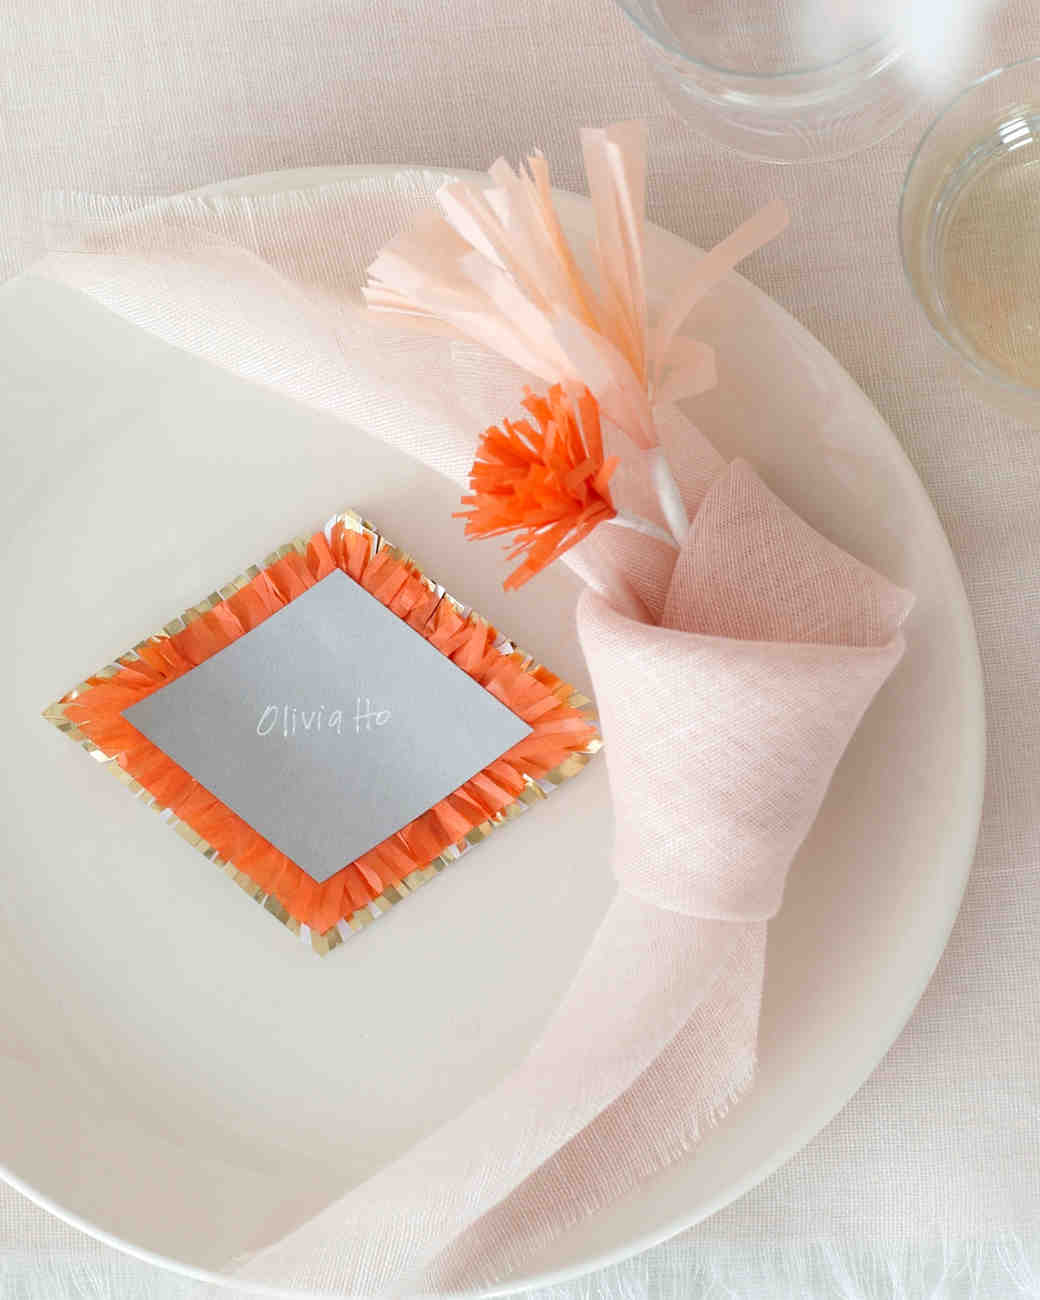 diy-sources-fabricdecor-grayline-wd106514-table-081-1014.jpg